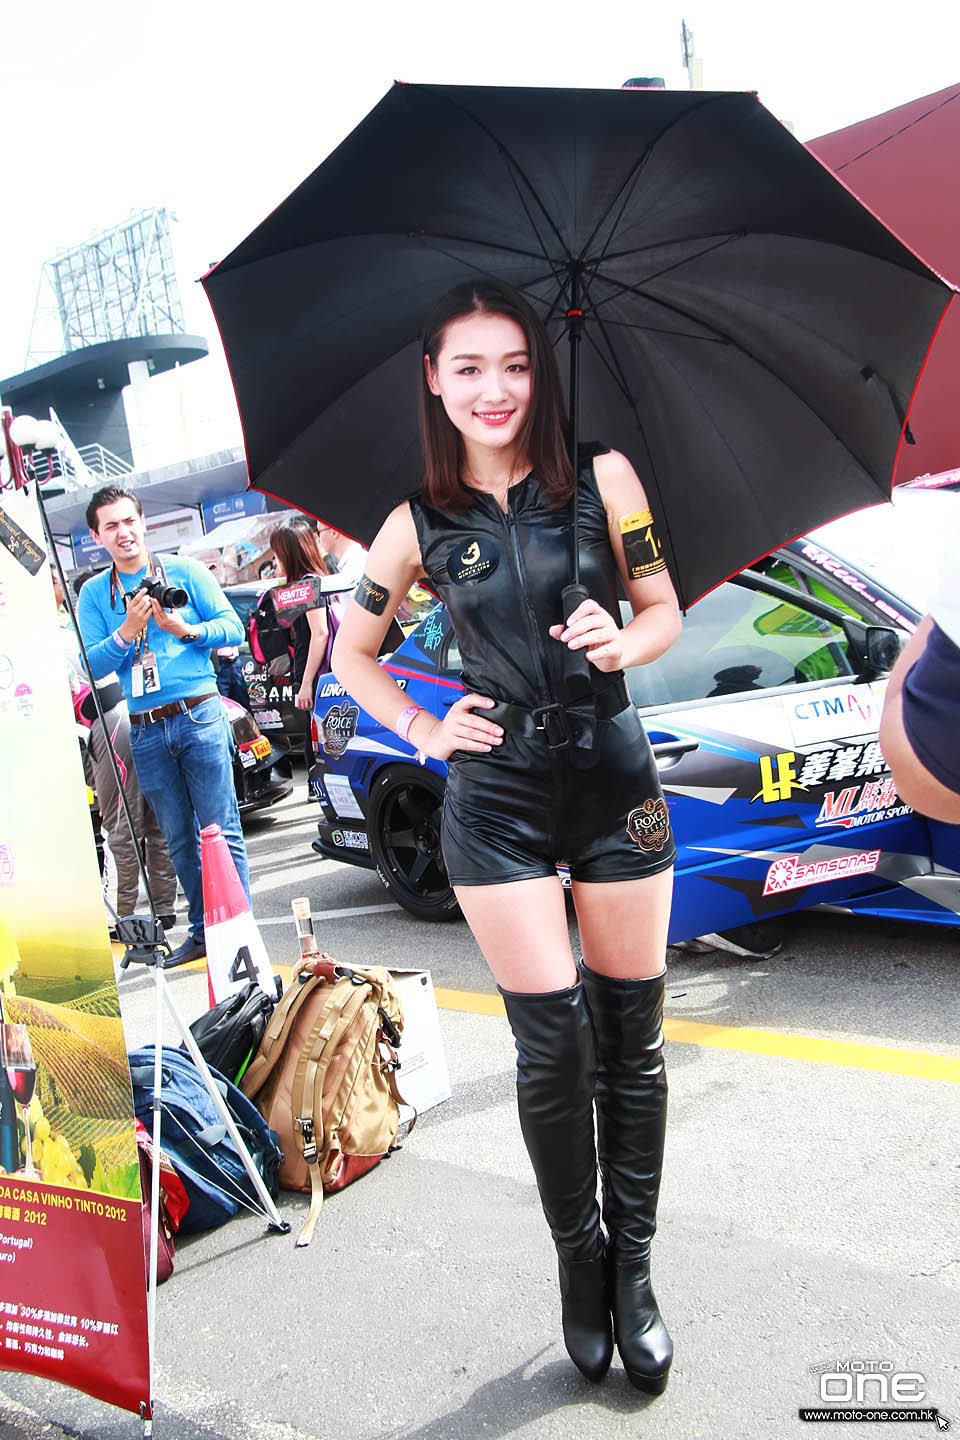 2017 MACAU RACINB GIRLS